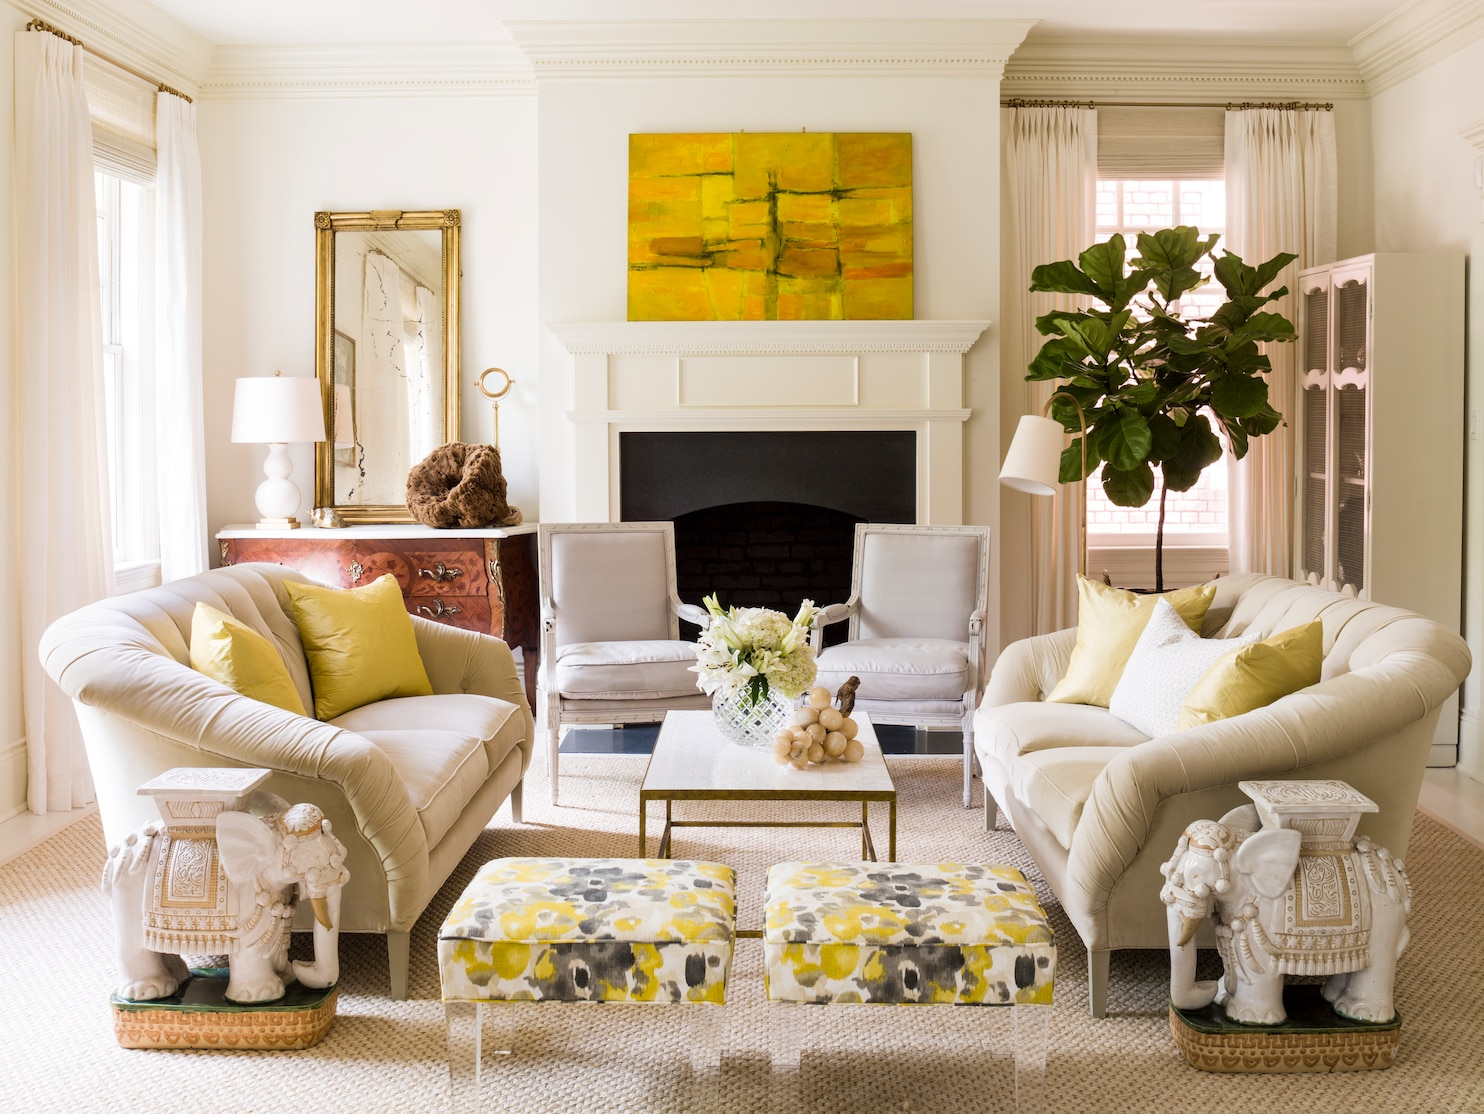 The Right Whites: Picking Neutral Paint Colors For Both